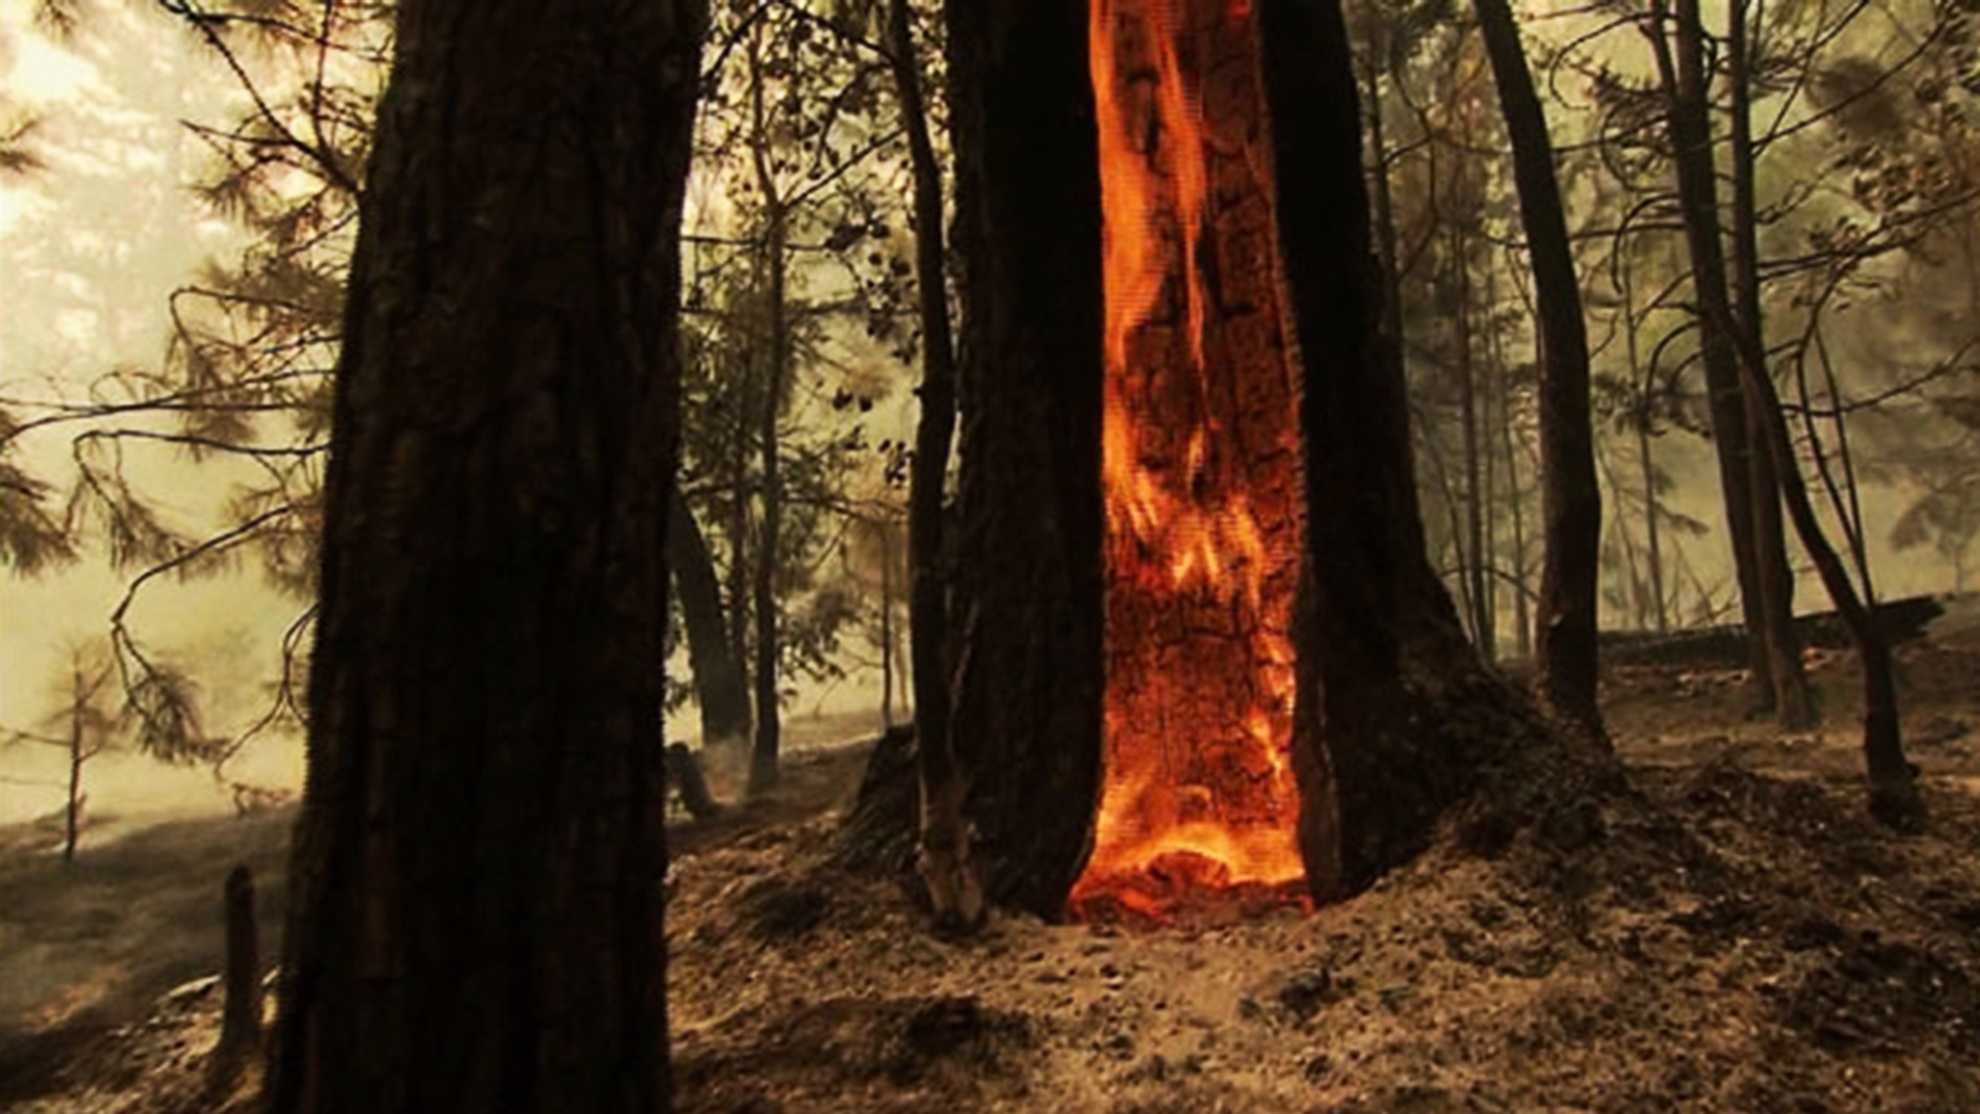 The Rim Fire burning in Yosemite has become the largest fire in the Sierra's recorded history.